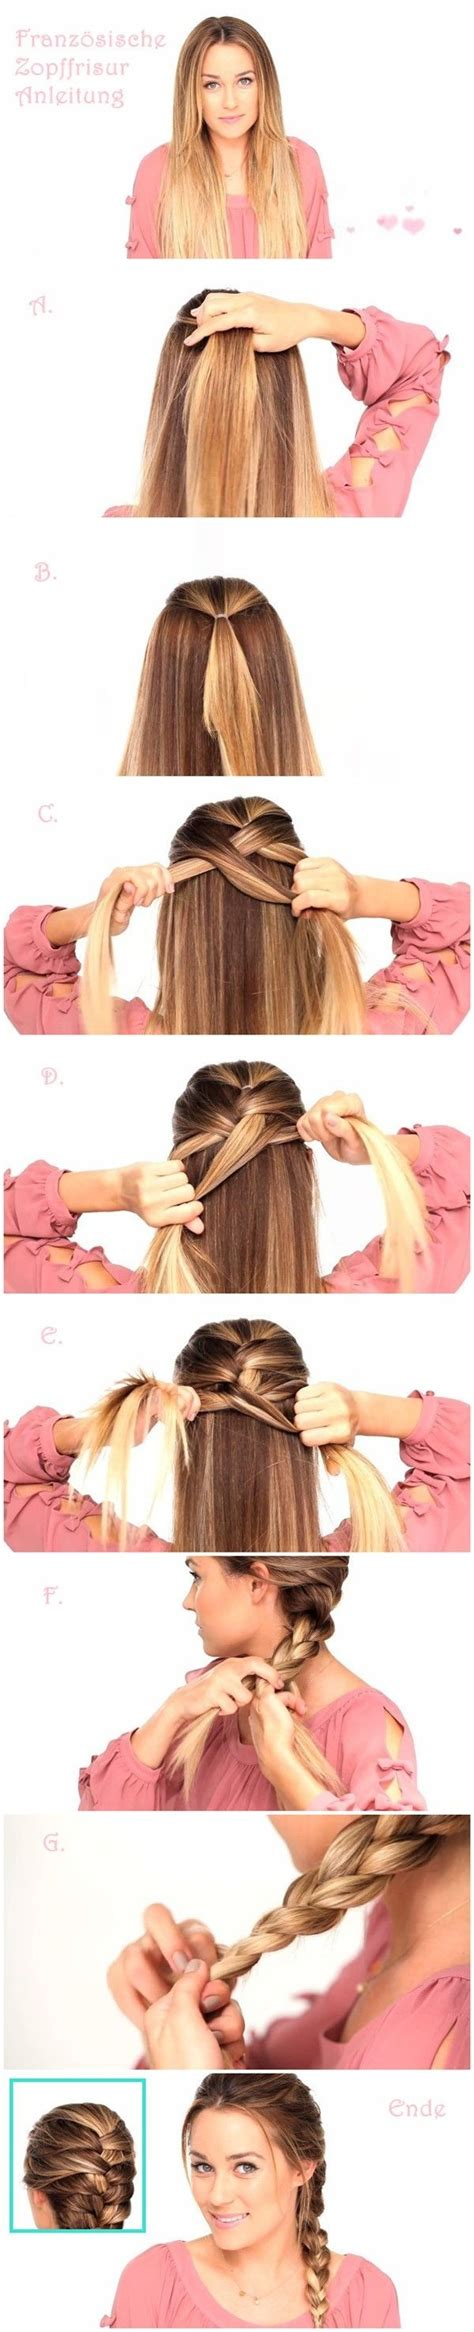 hairstyles for straight hair tutorial 10 french braids hairstyles tutorials everyday hair